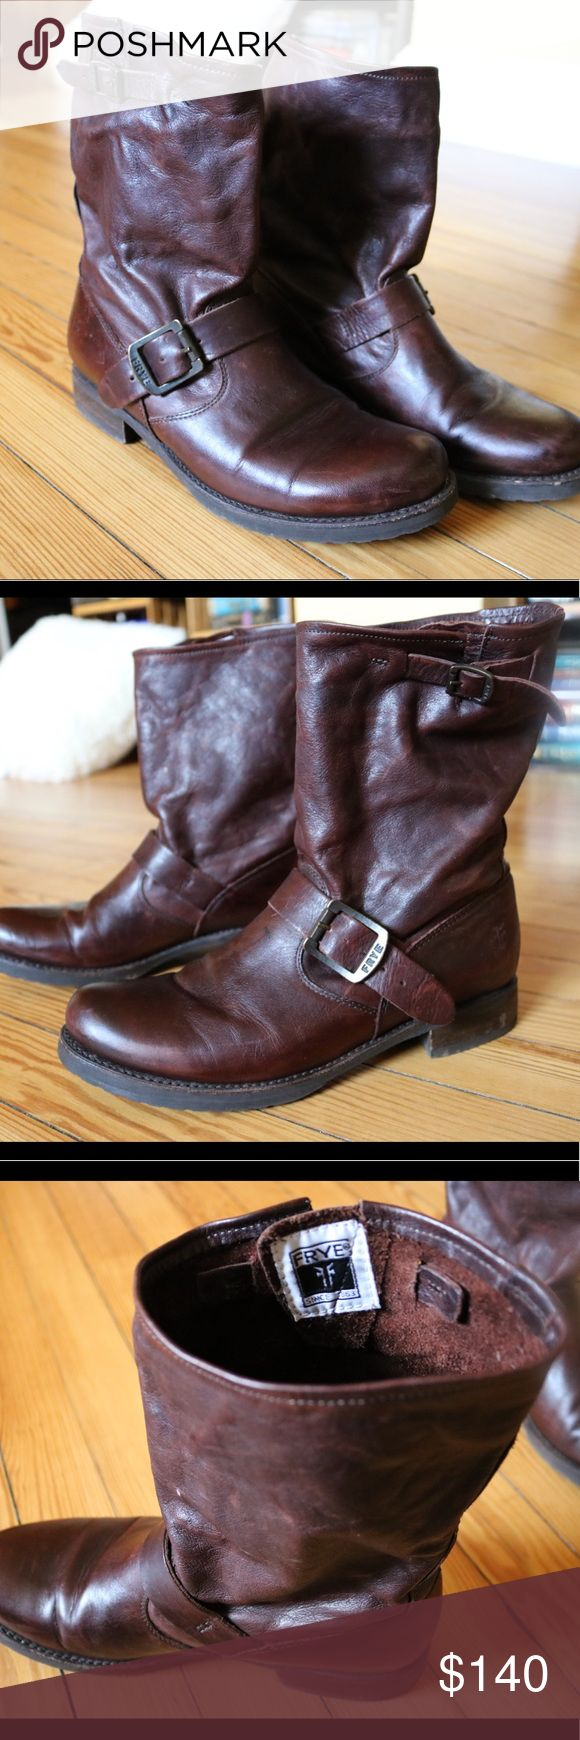 Frye Veronica short moto Boots Beautiful deep mahogany moto Boots by Frye. In excellent condition, barely worn. Minimal scuffing. These are the shorter version of the Veronica slouch boot. The shaft is roomy. Frye Shoes